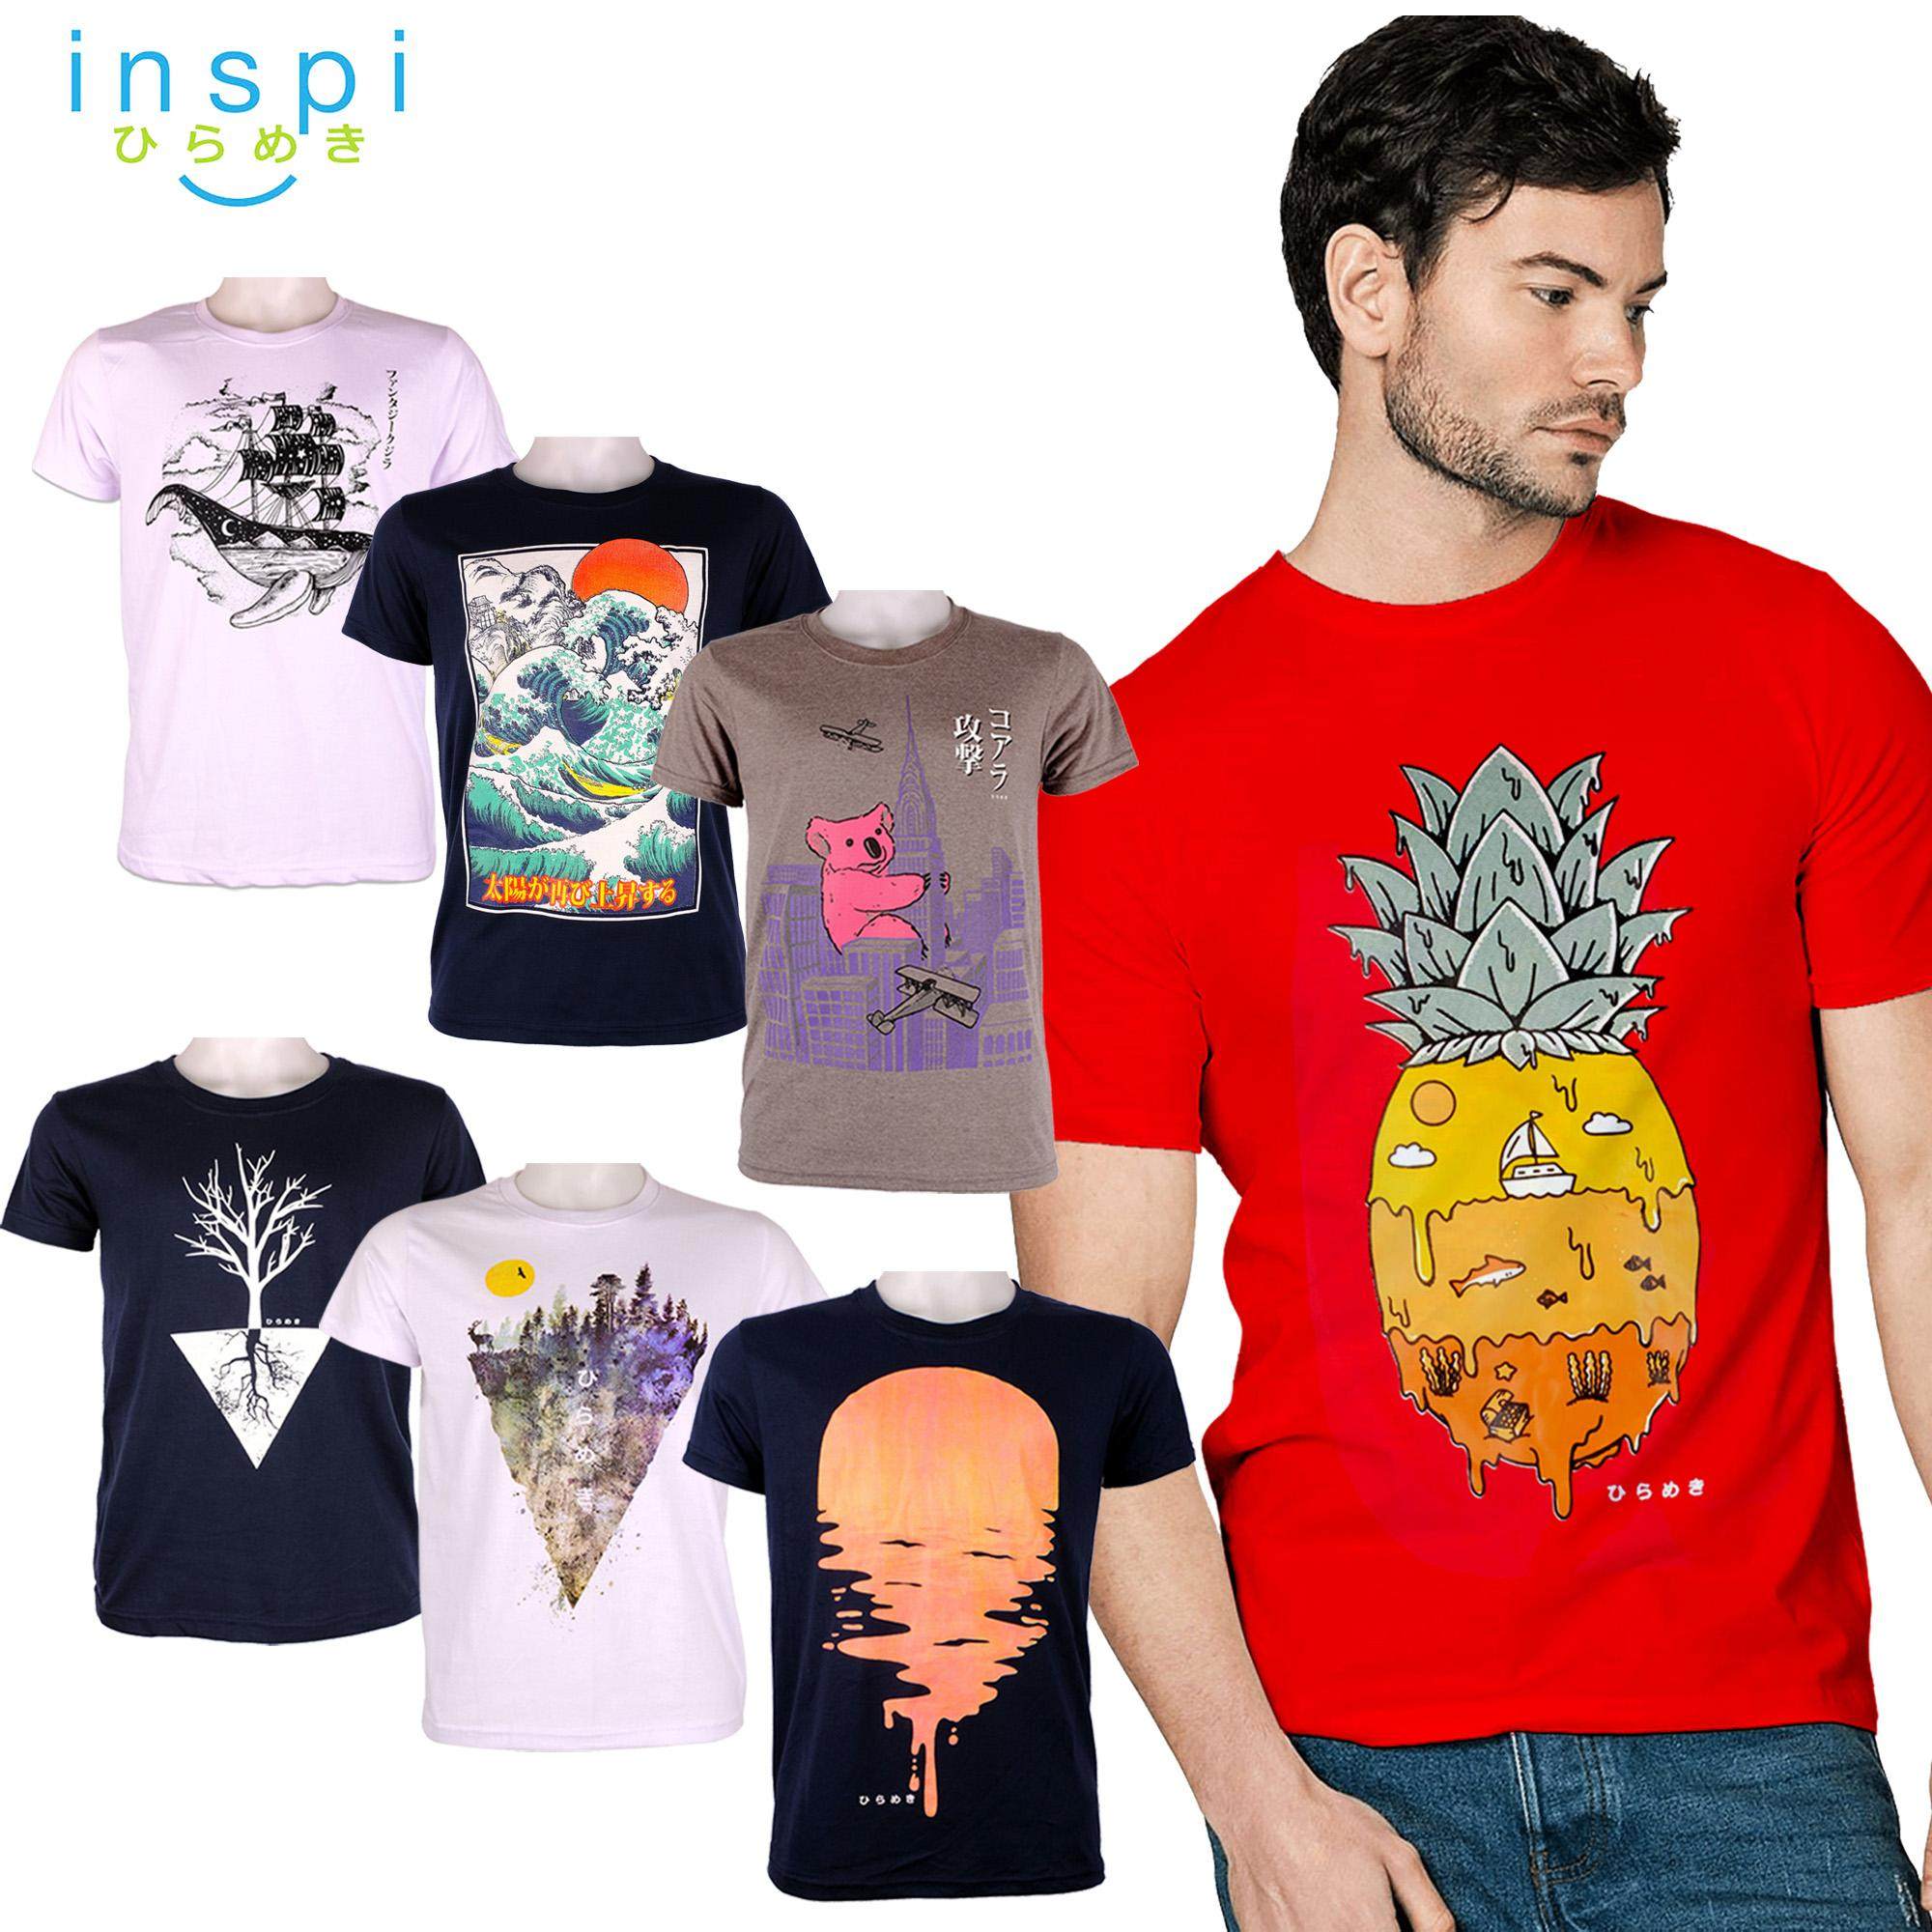 Inspi Tees Nature Collection Tshirt Printed Graphic Tee Mens T Shirt Shirts For Men Tshirts Sale By Inspi.